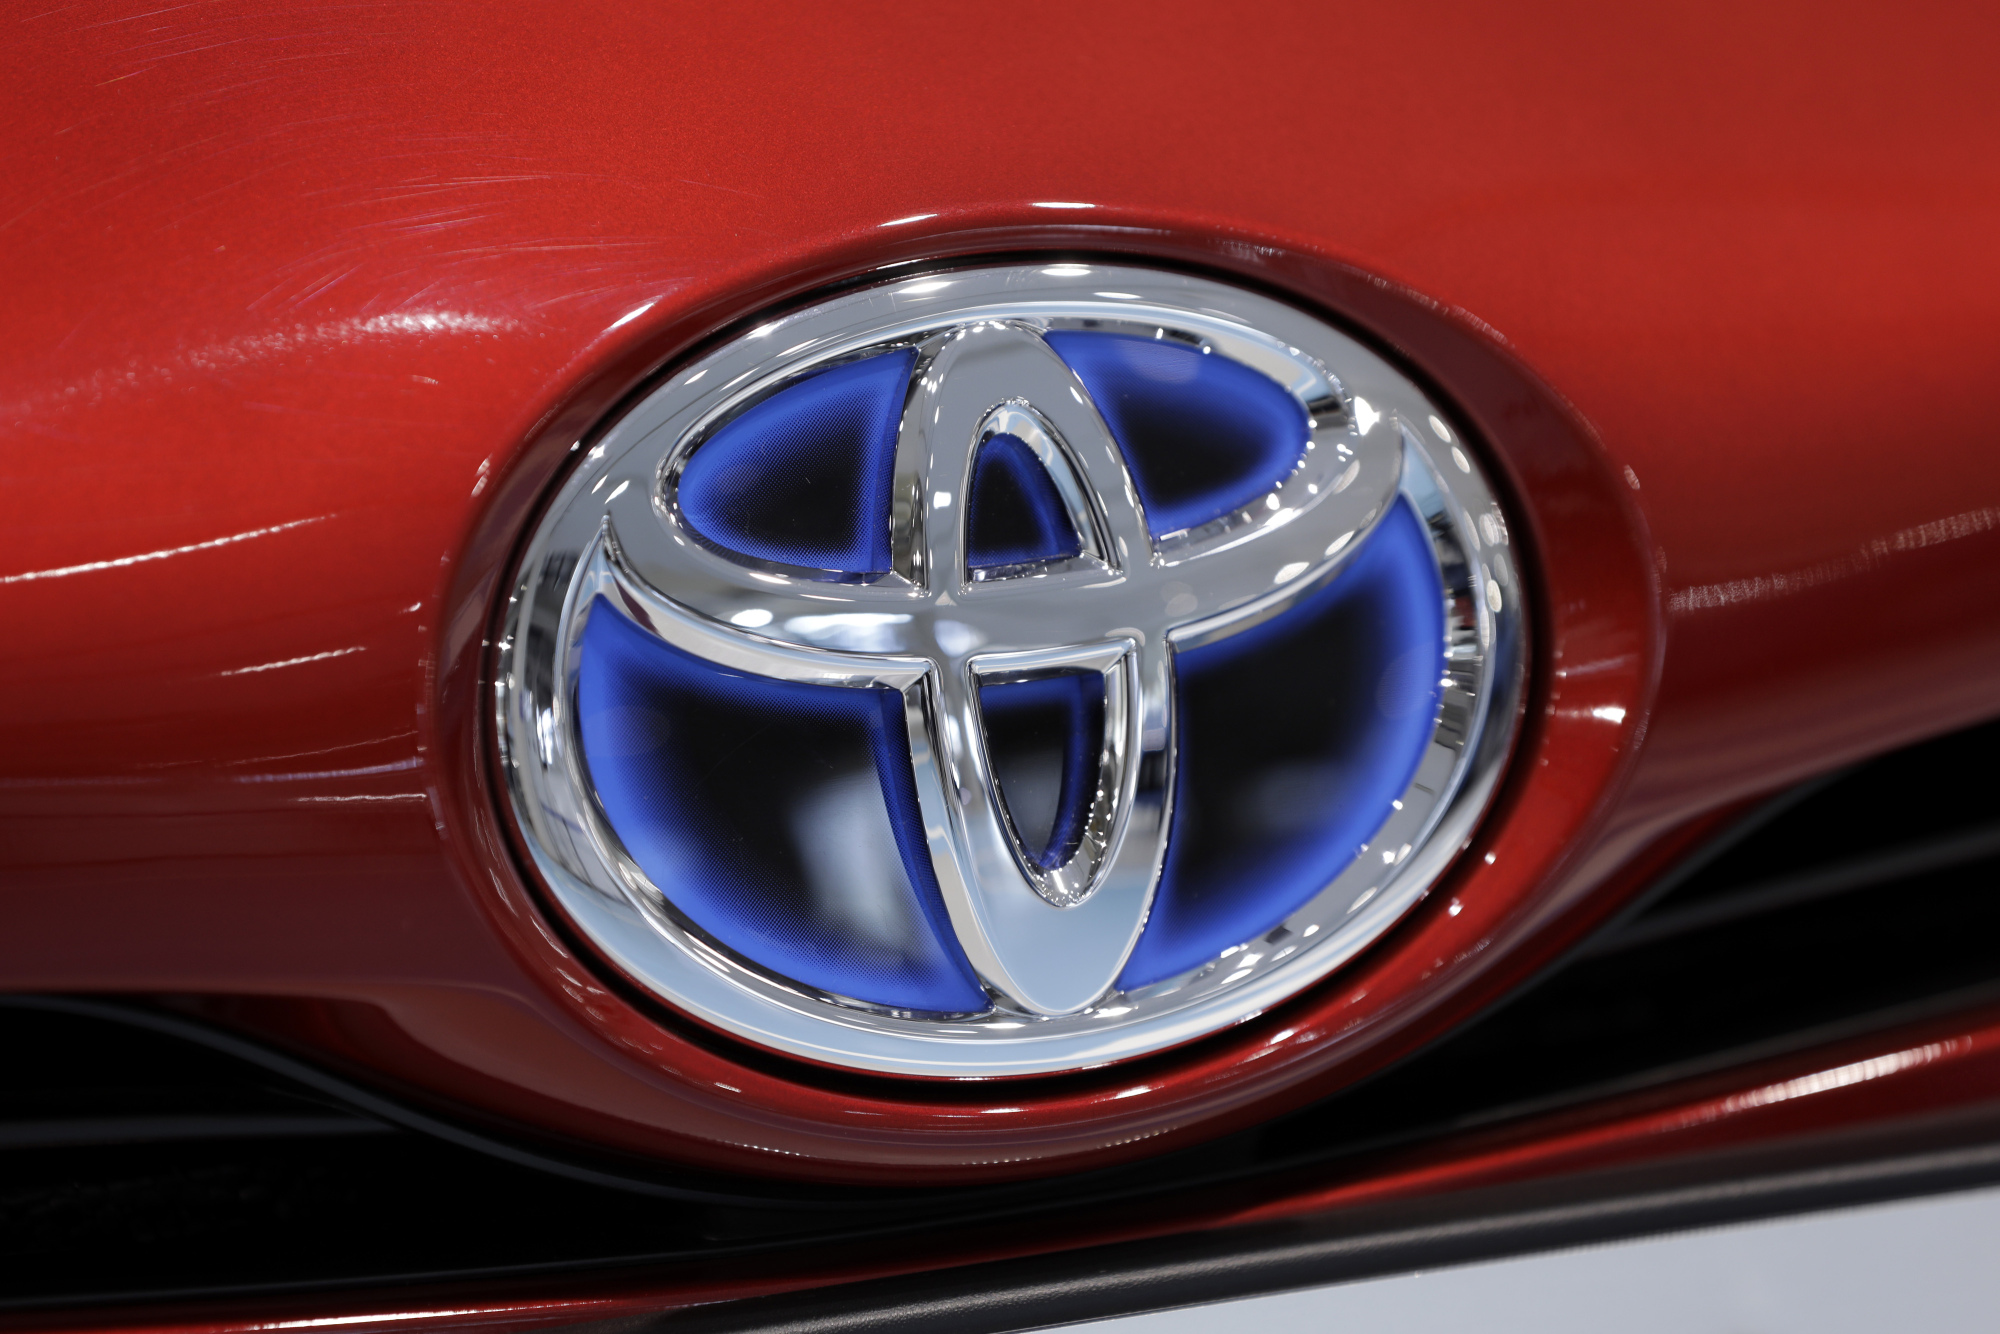 Toyota Agrees to Add Android Auto in Its Cars - Bloomberg